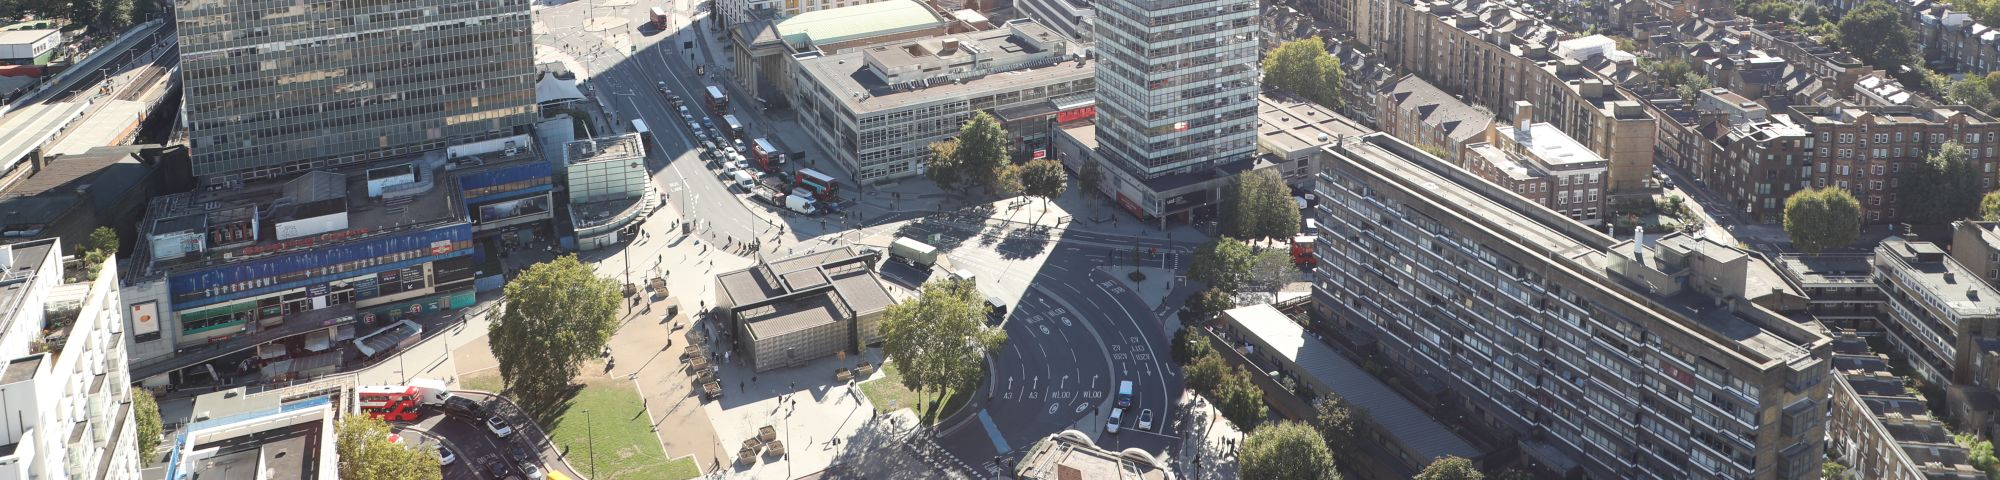 Image of LCC and Elephant and Castle taken from above